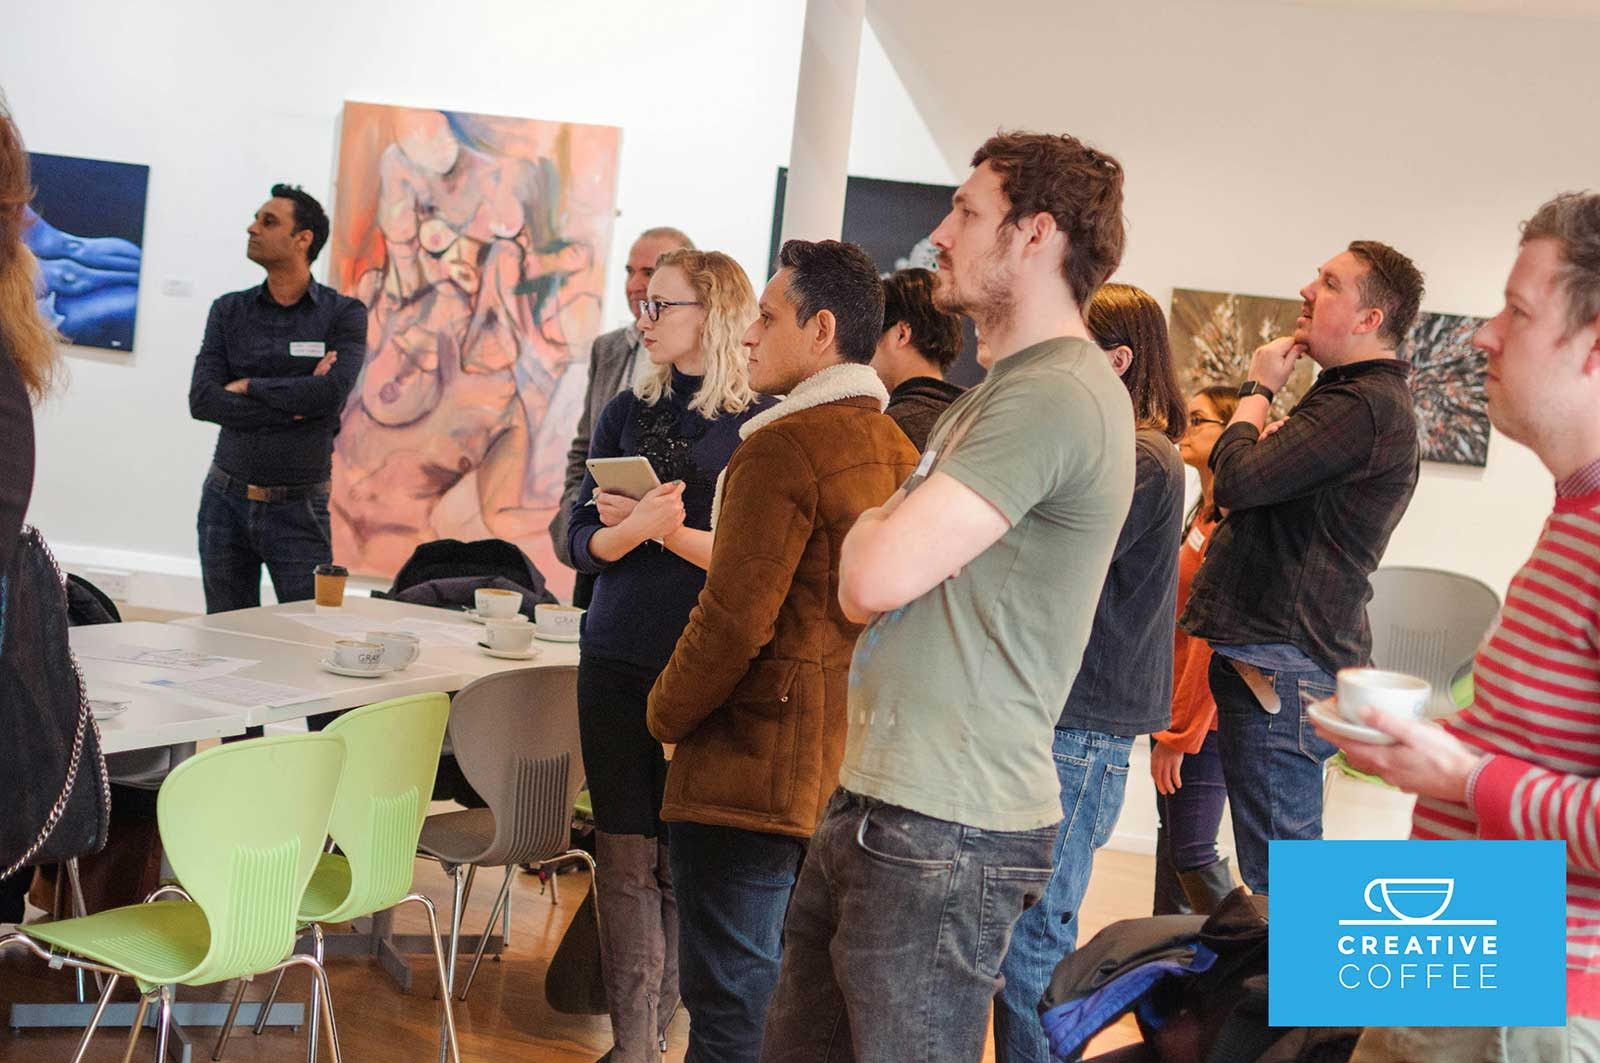 Photograph of people drinking coffee at a networking event